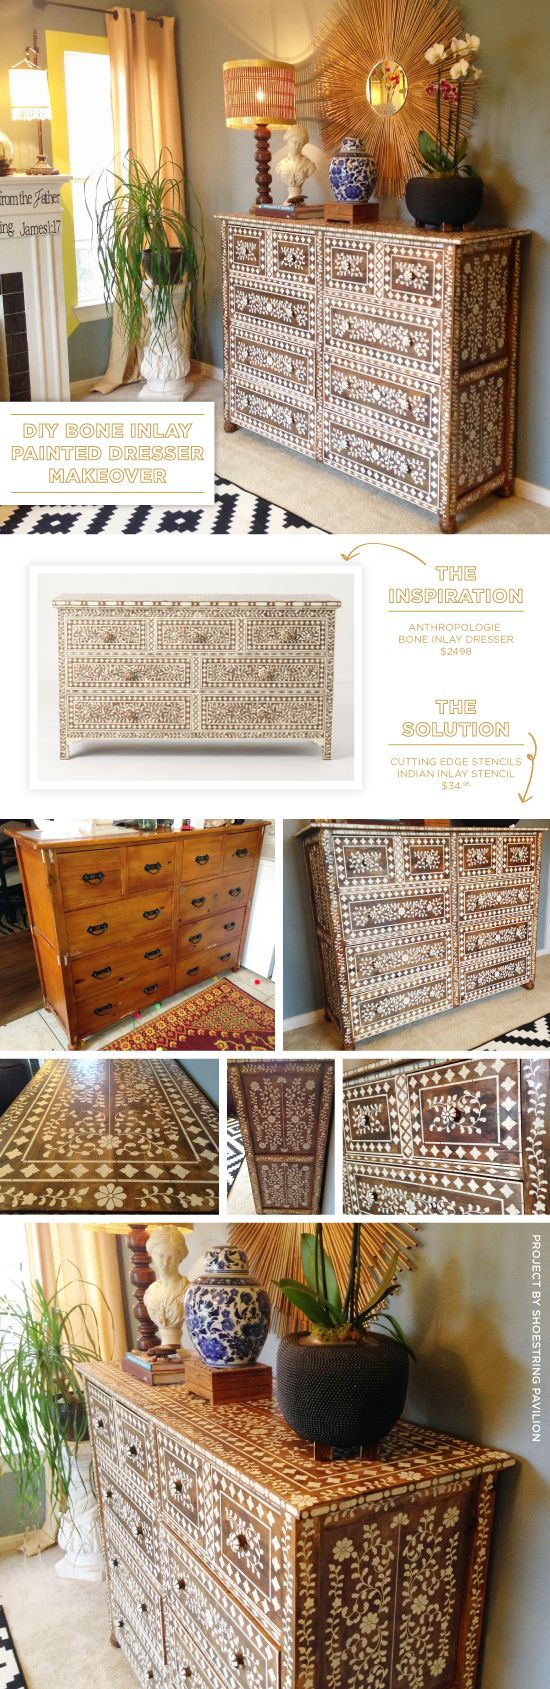 best 20 moroccan furniture ideas on pinterest bohemian cutting edge stencils shares a diy anthropogolie inspired bone inlay stenciled dresser using the indian inlay